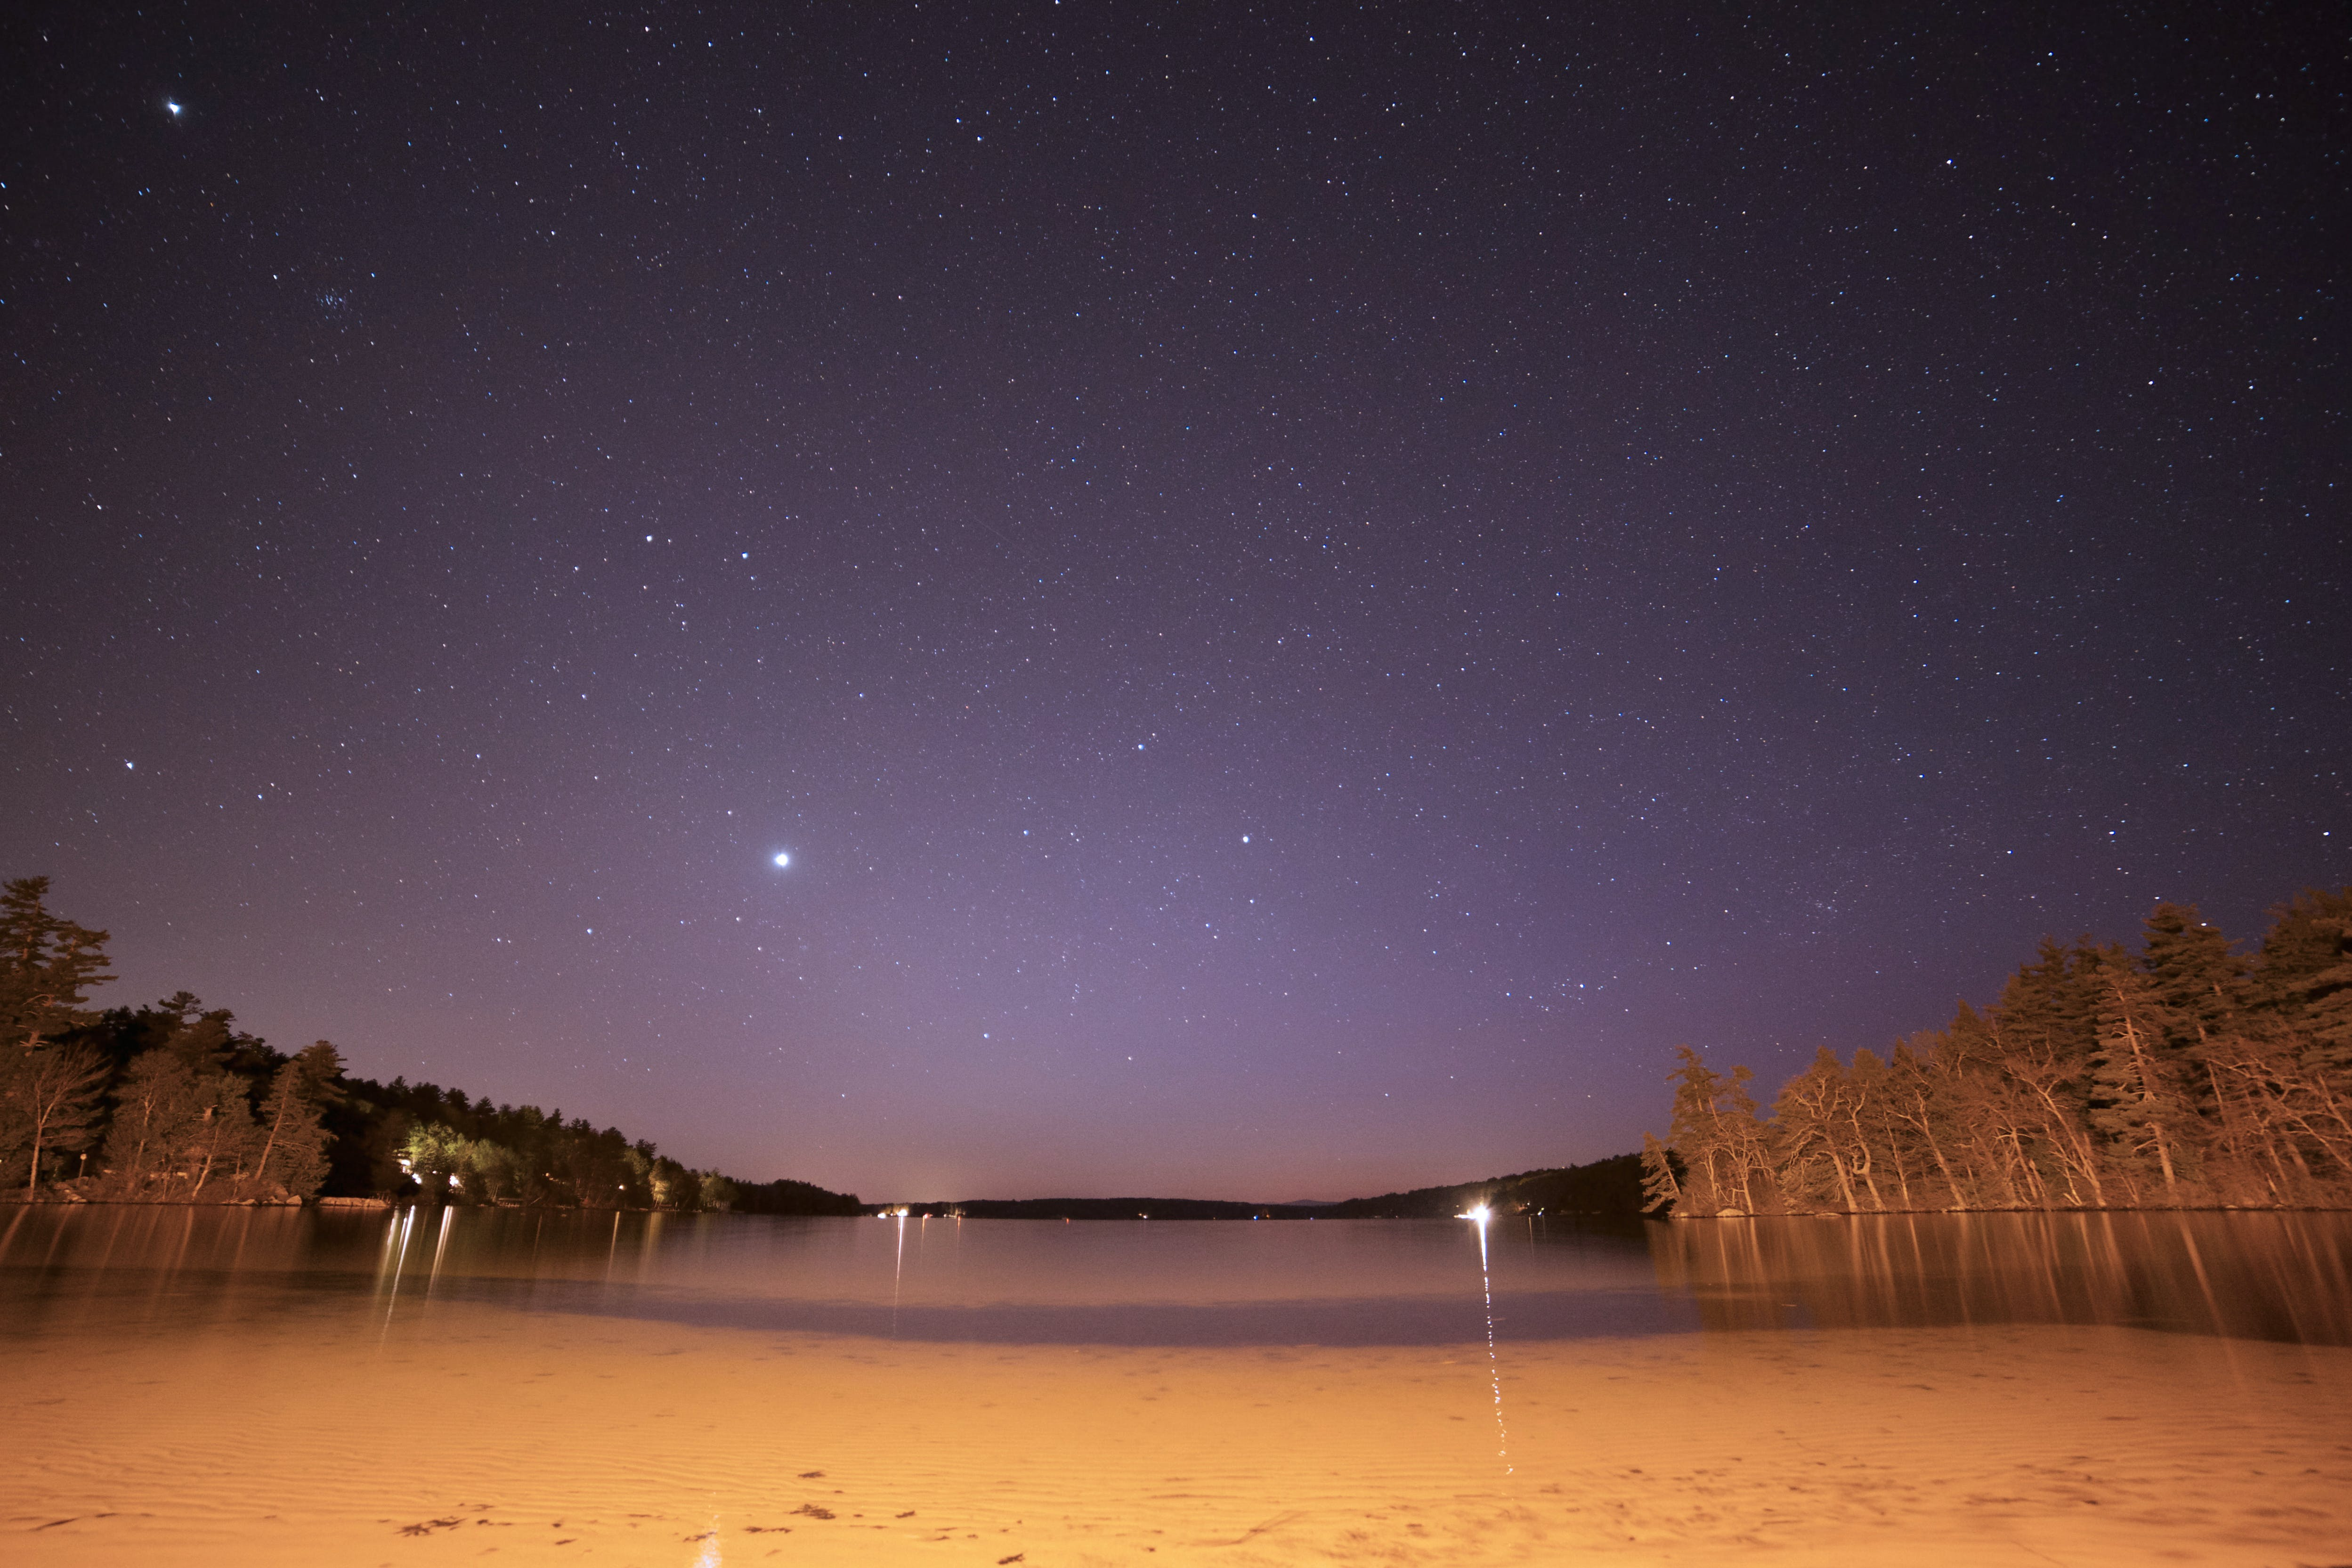 Free stock photo of sky, beach, night, lake